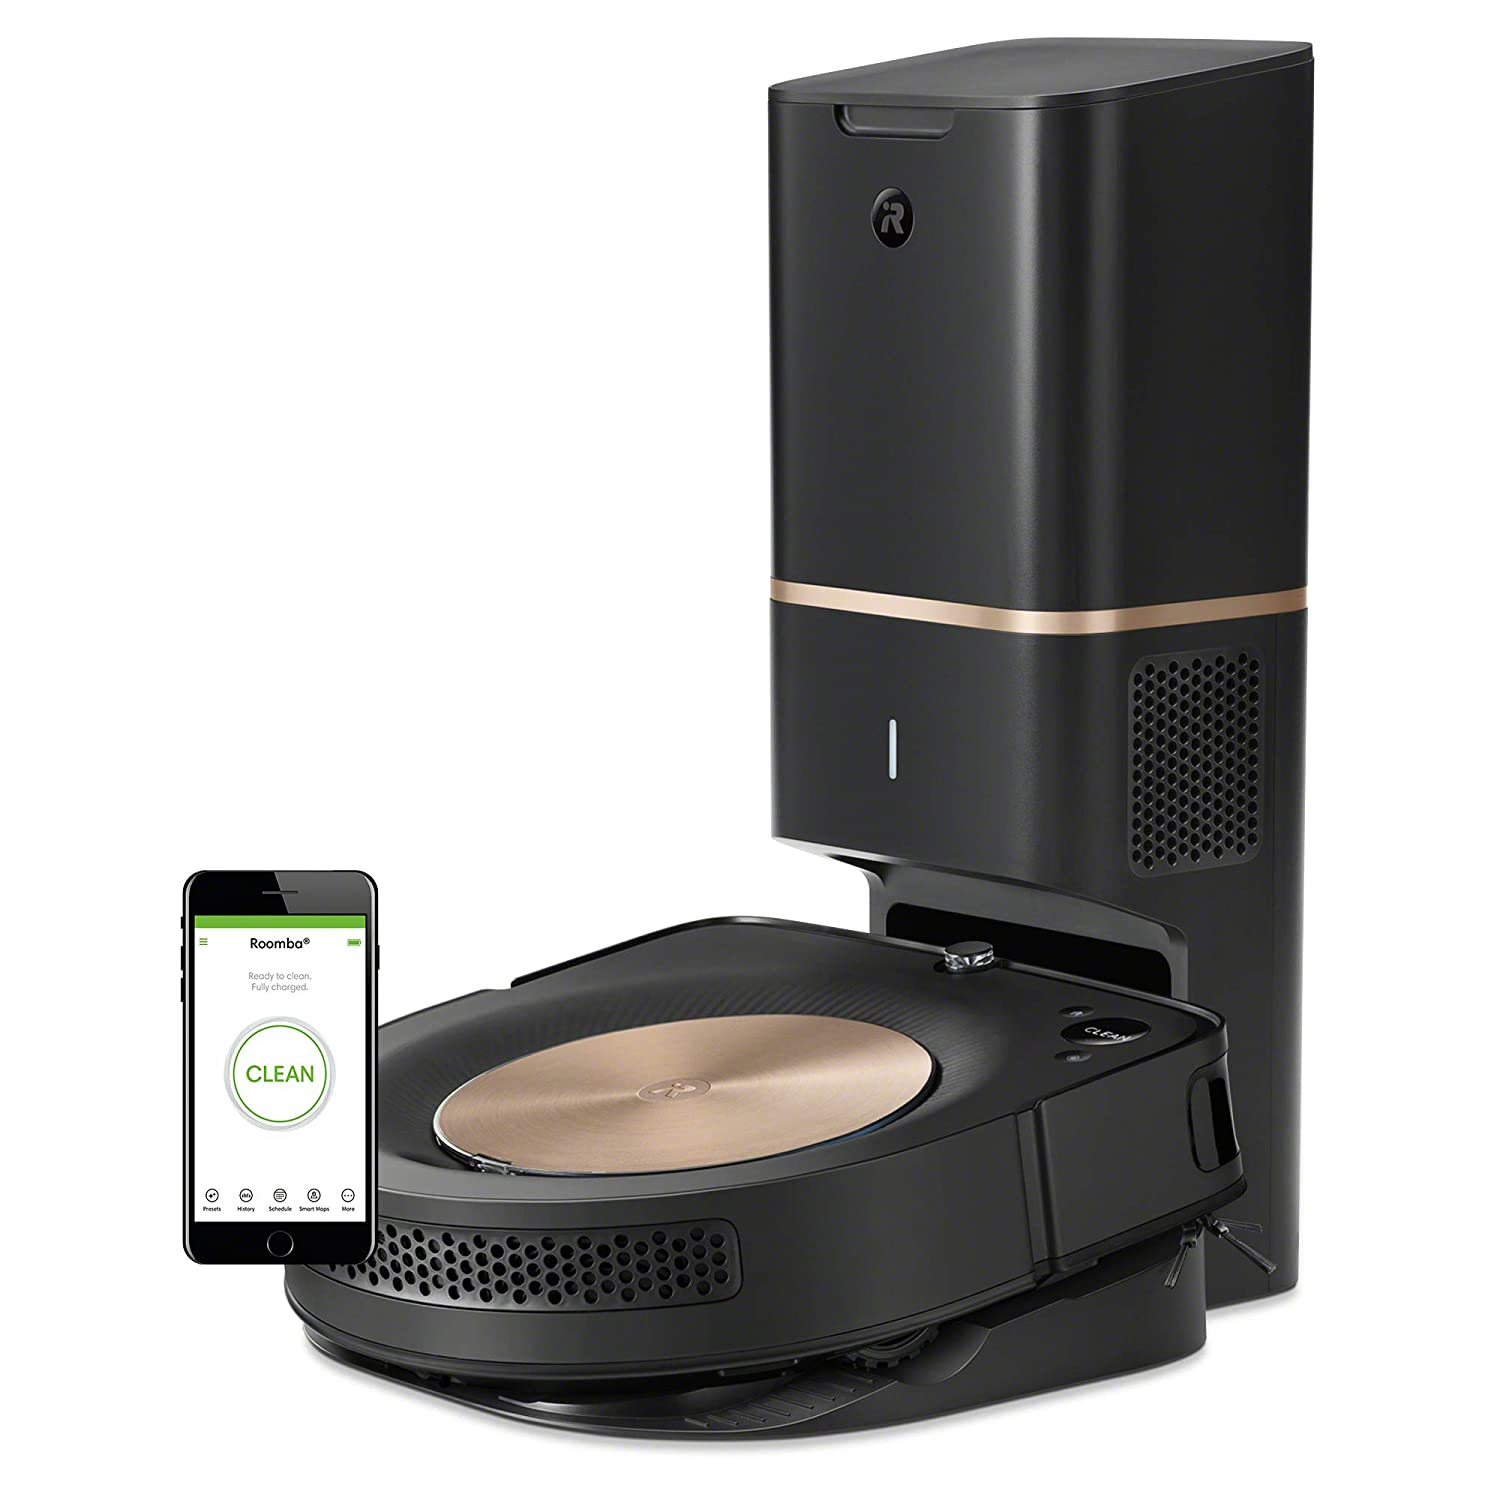 iRobot Roomba s9+ (9550) Robot Vacuum with Automatic Dirt Disposal- Empties itself, Wi-Fi Connected, Smart Mapping, Powerful Suction, Anti-Allergen System, Corners & Edges, Ideal for Pet Hair